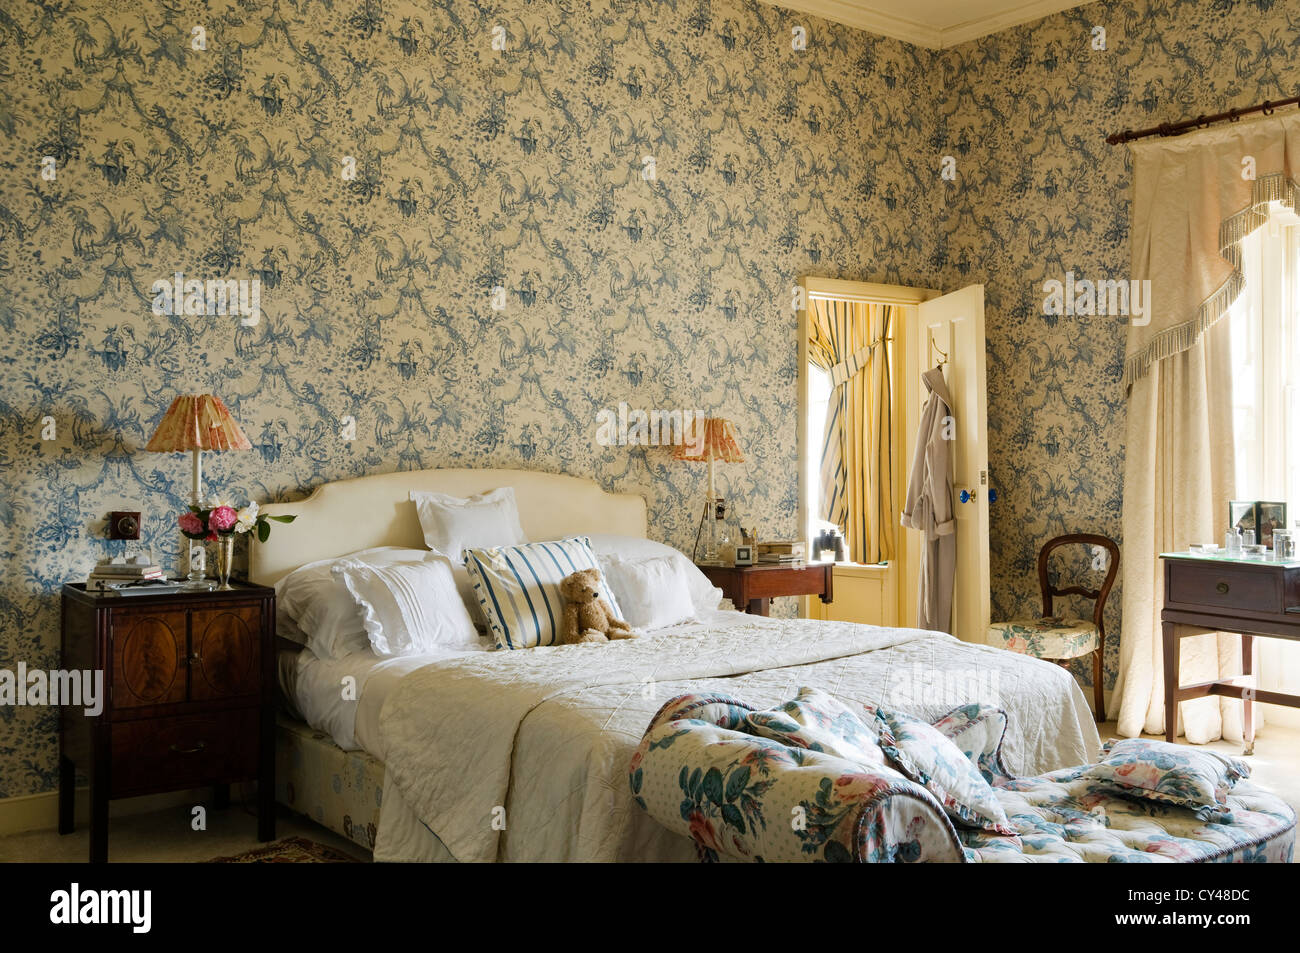 Toile de jouy wallpaper in bedroom with floral patterned chaise Stock Royalty Free Image